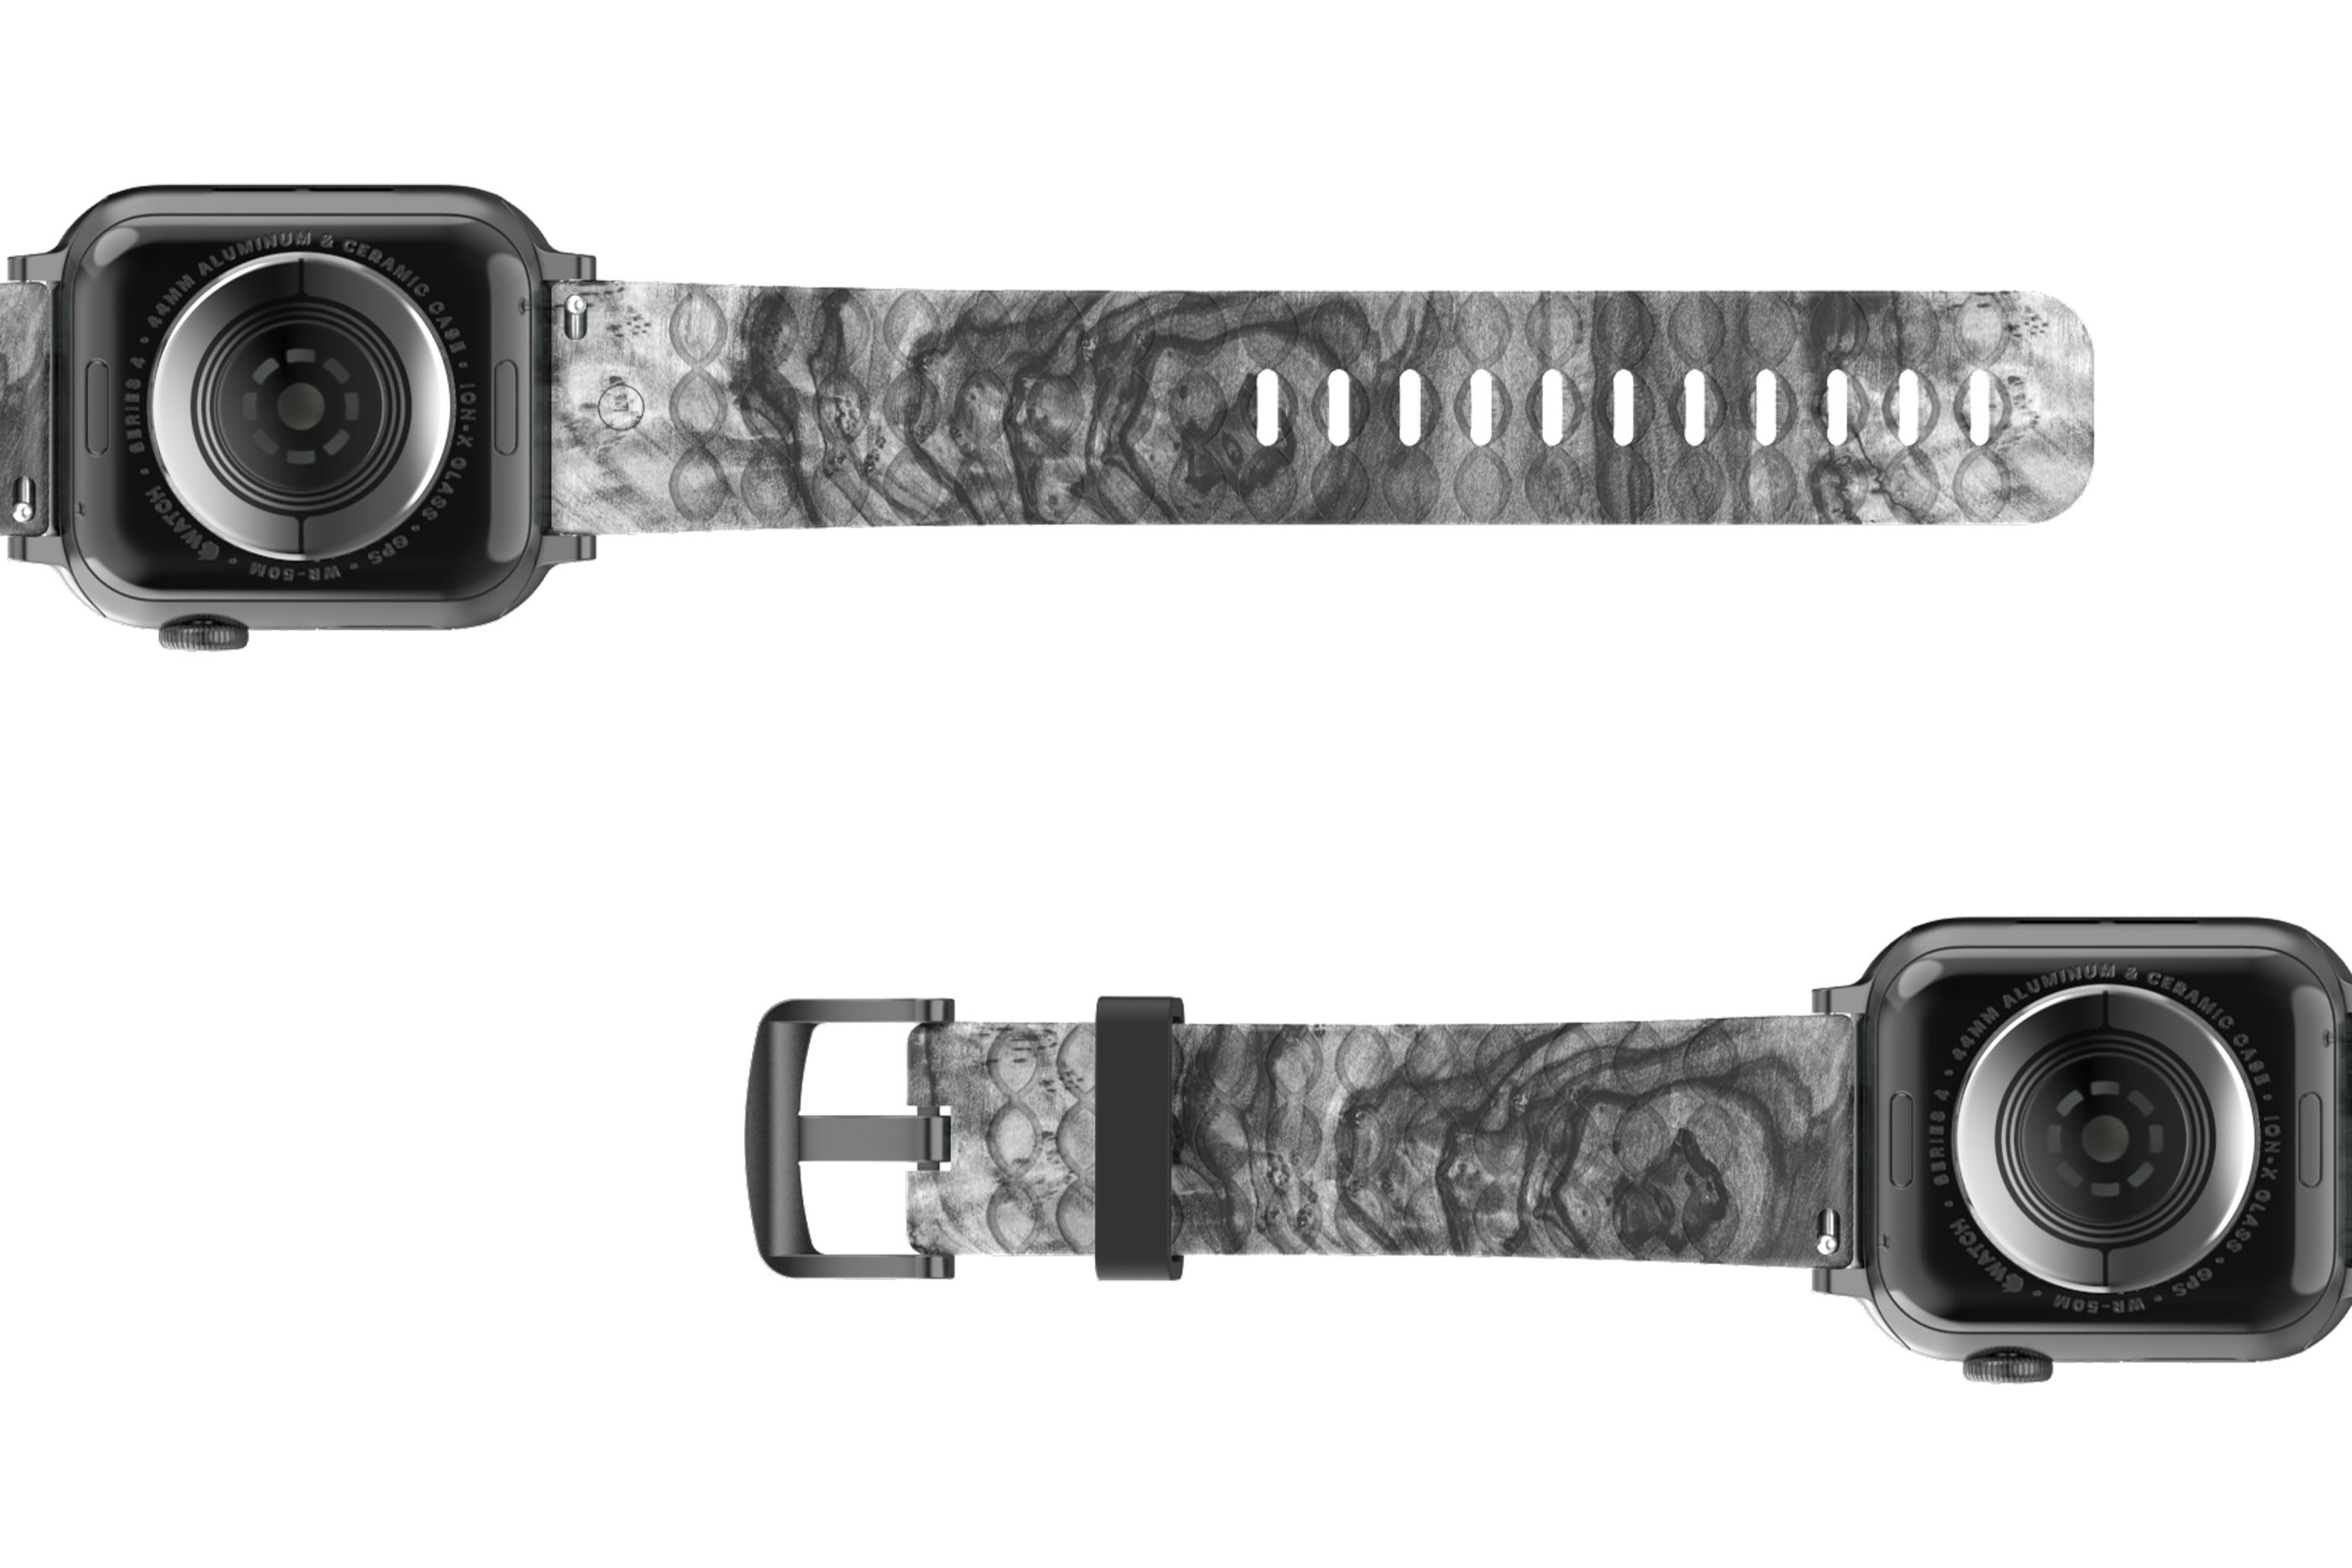 Nomad Relic Apple Watch Band with gray hardware viewed bottom up